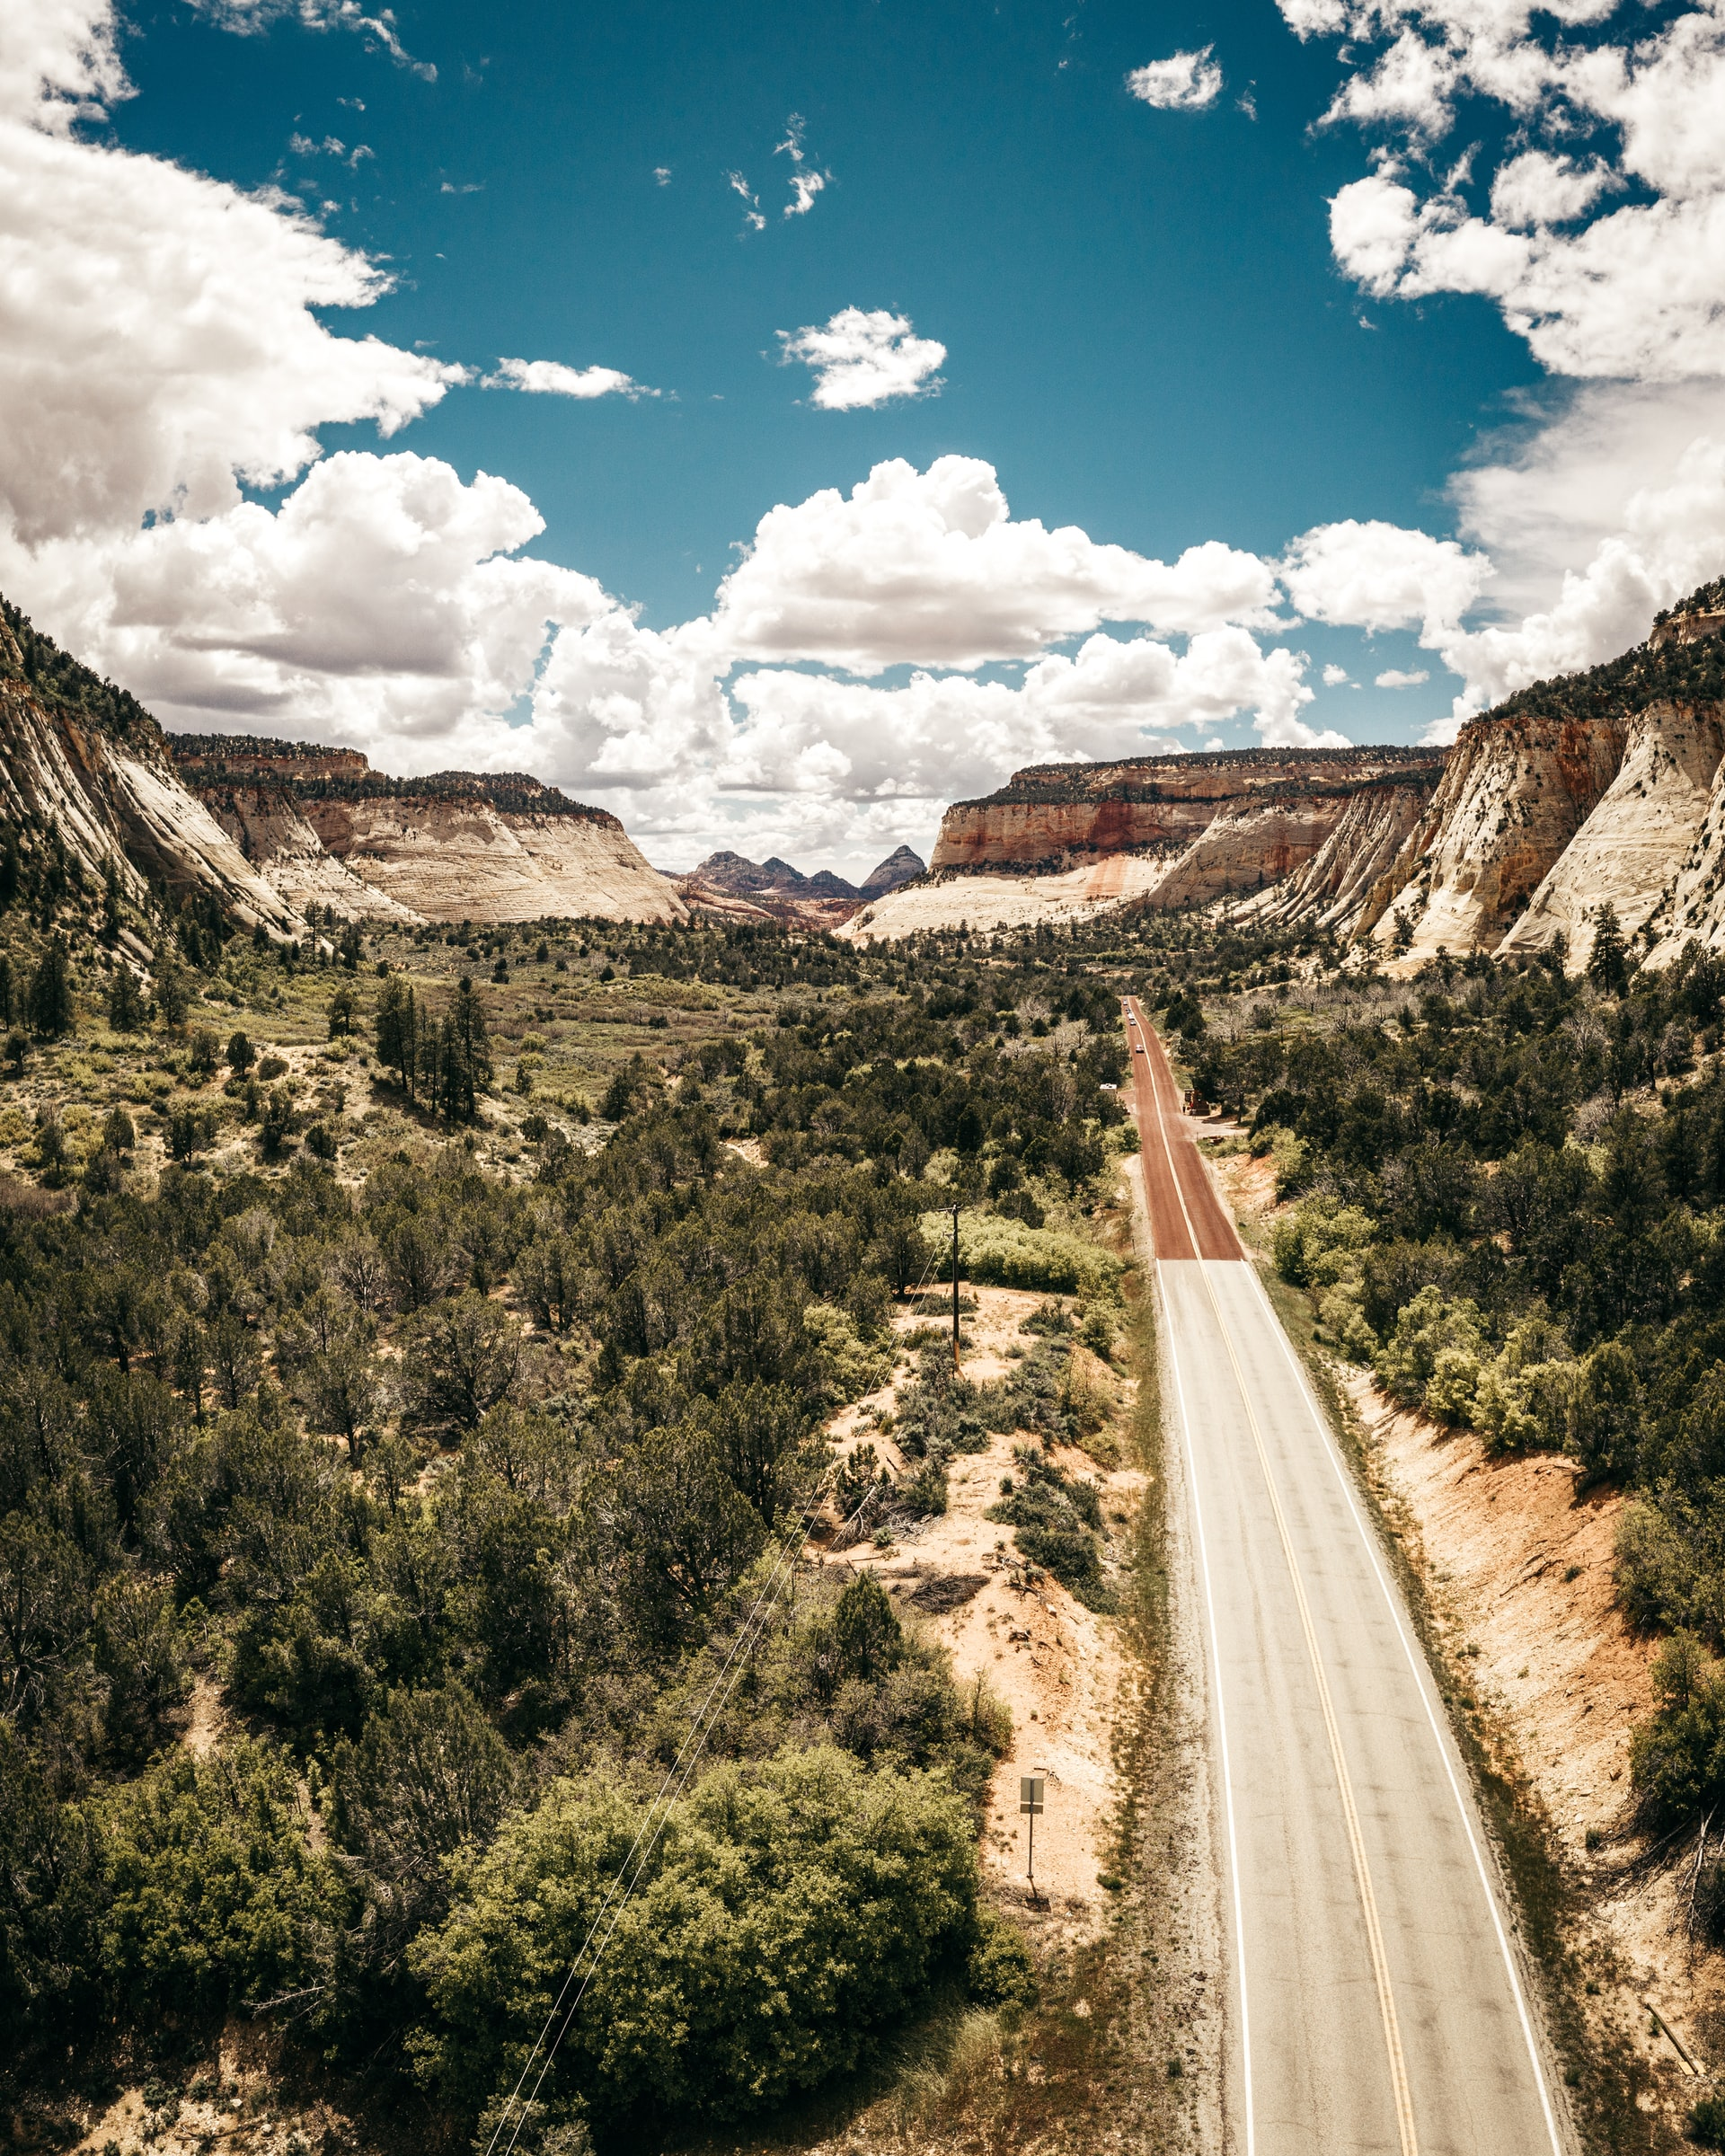 Road Trips in the USA   C&C Travel Hub